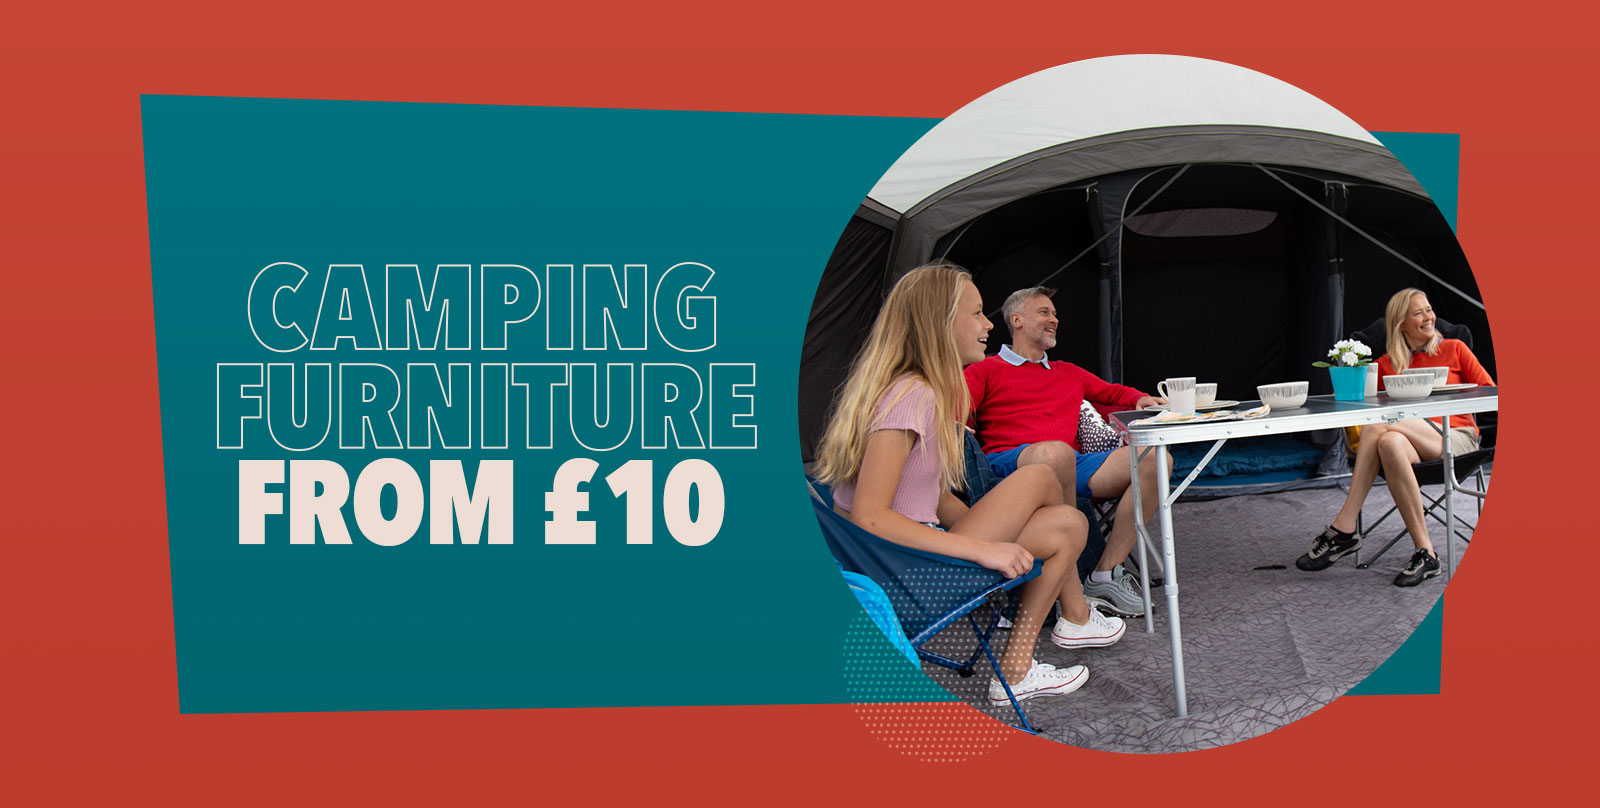 Camping Furniture from £10